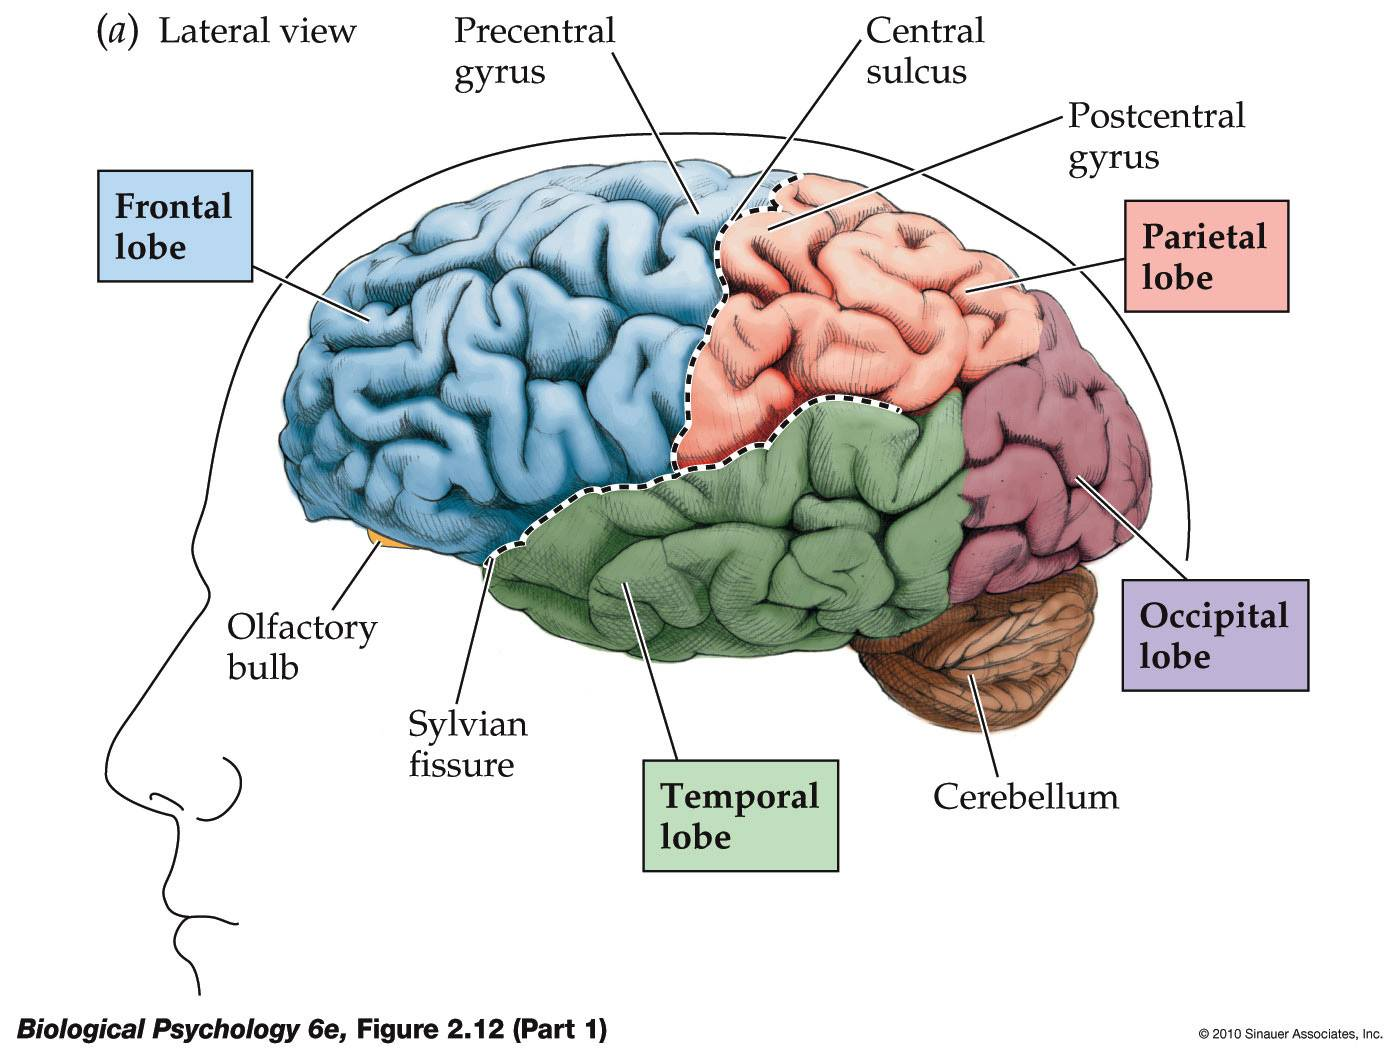 Lateralization of brain function - Wikipedia